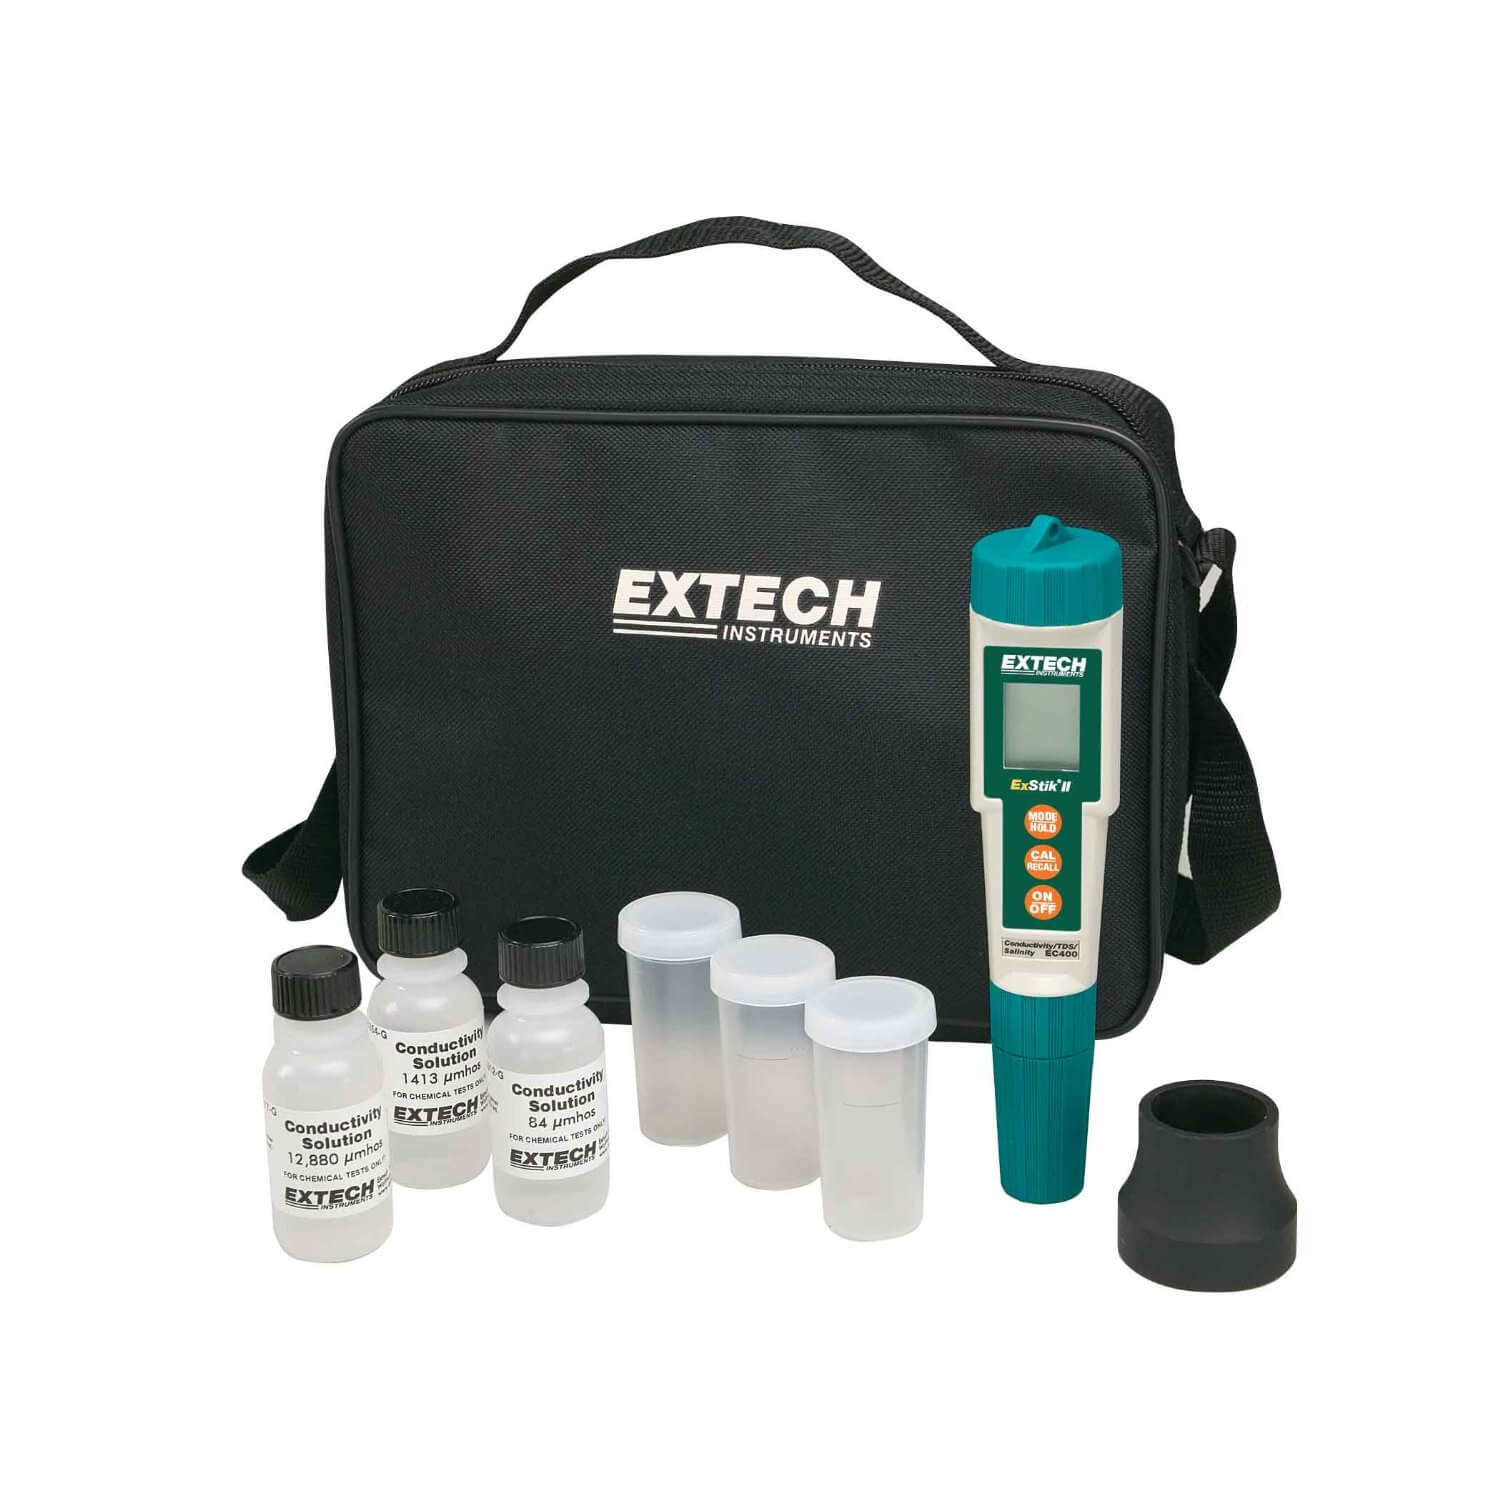 Extech EC410 Exstik Digital Handheld Conductivity Meter Kit